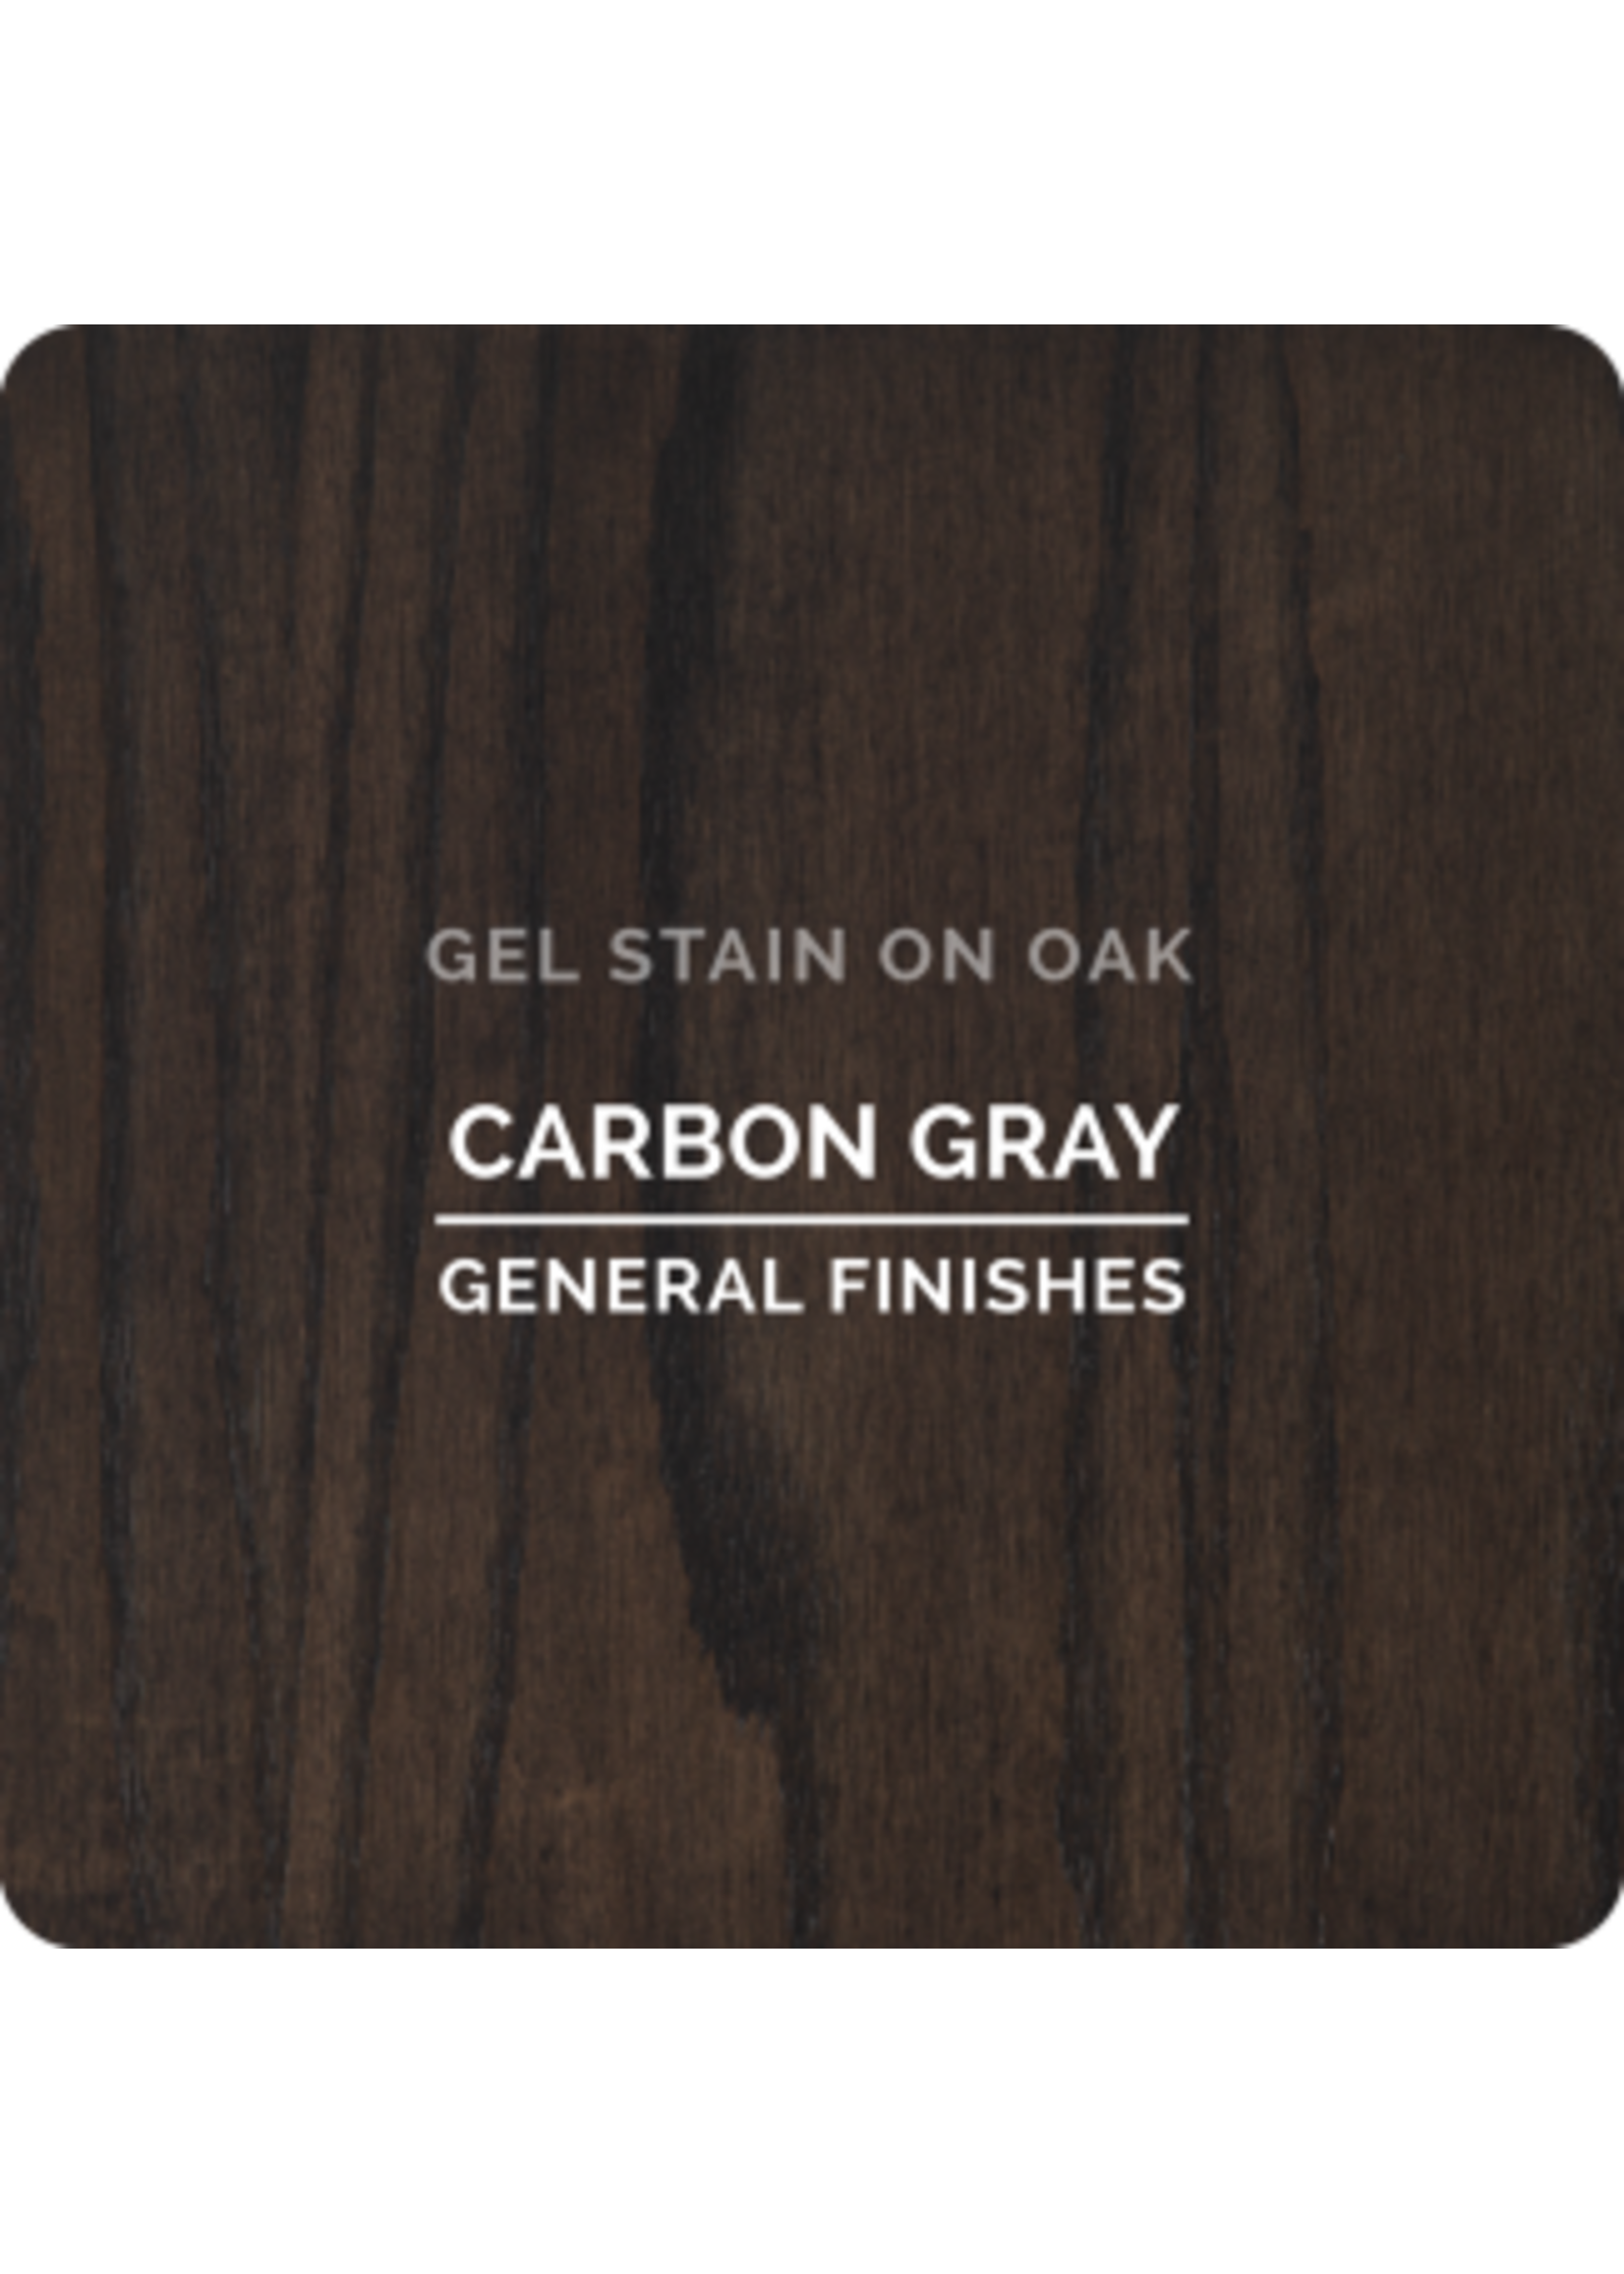 General Finishes Carbon Gray General Finishes Gel Stain